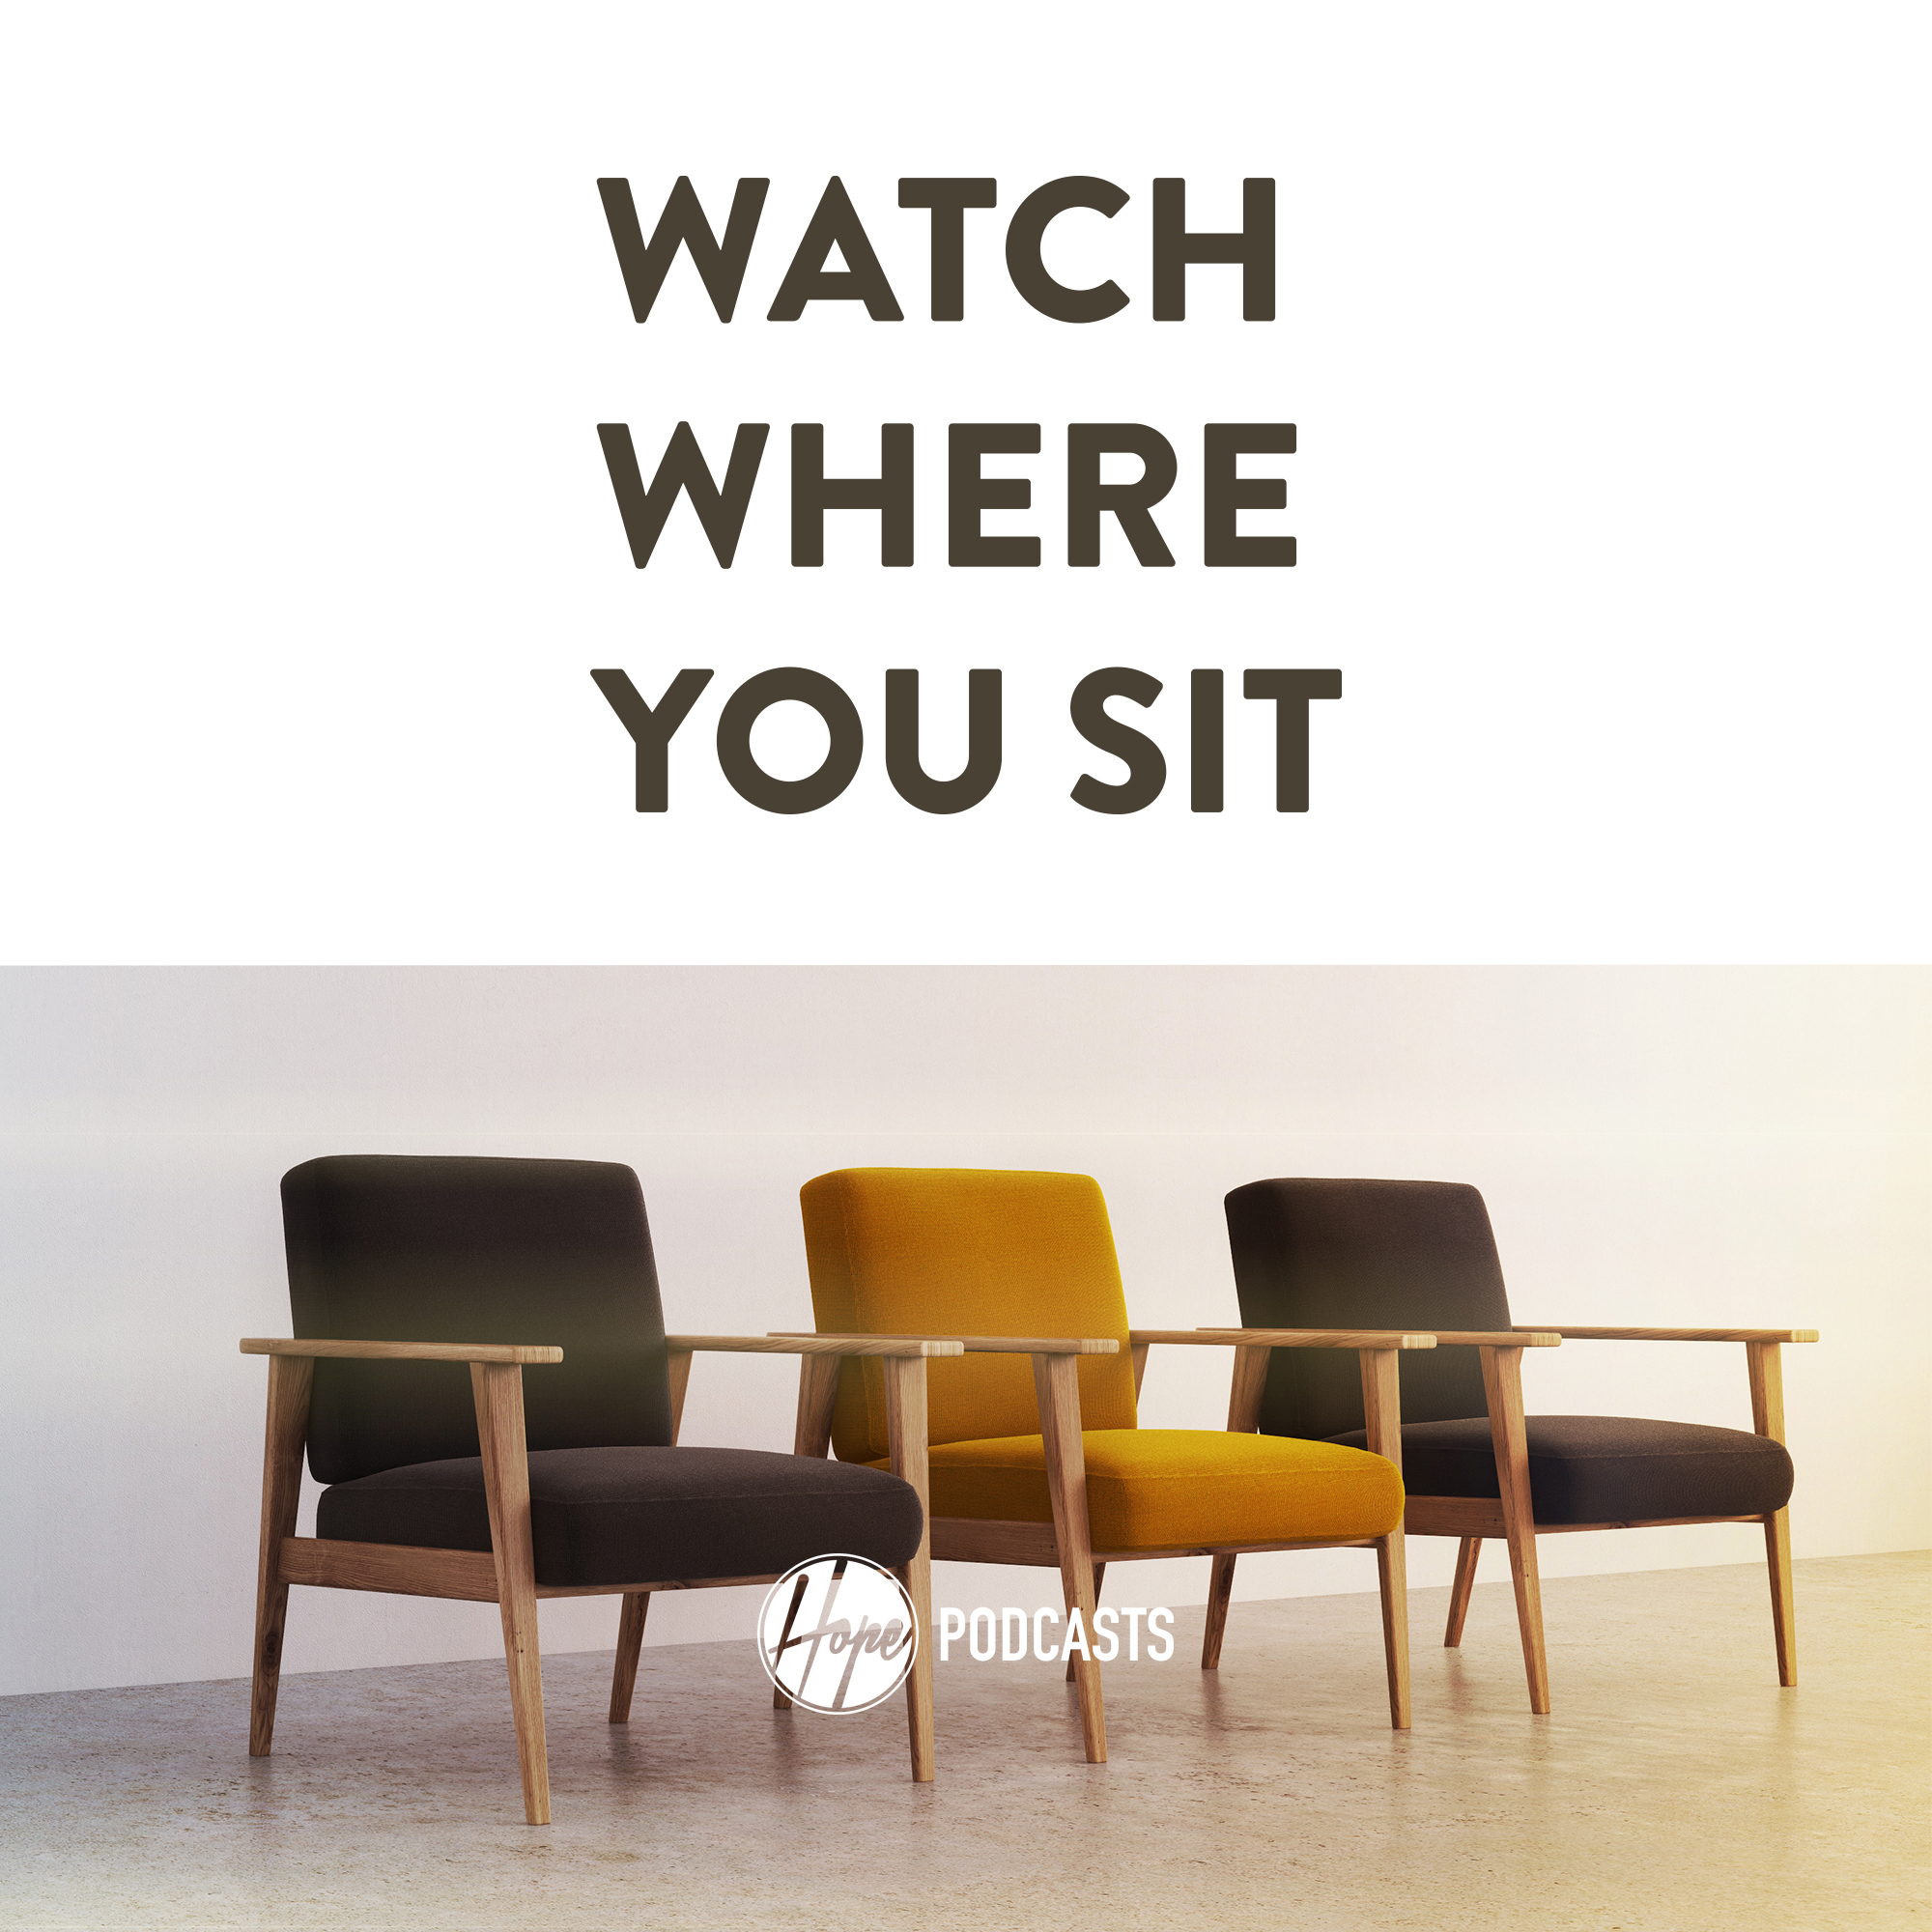 watch where you sit image.jpg